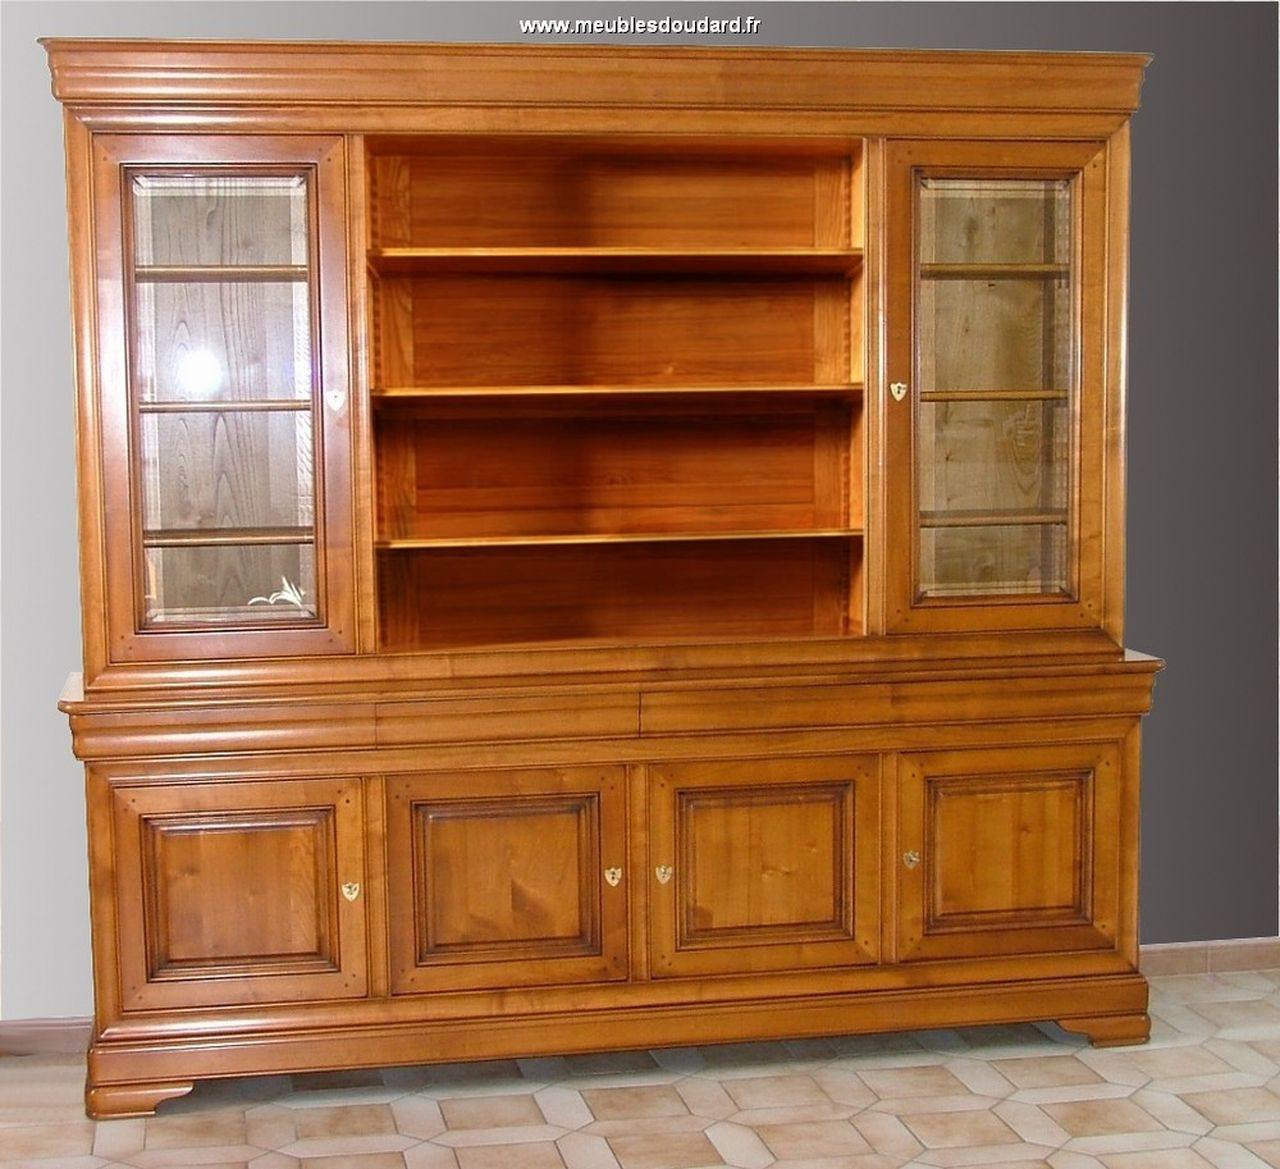 fabriquer bibliotheque en bois meubles de design d 39 inspiration pour la t l vision. Black Bedroom Furniture Sets. Home Design Ideas